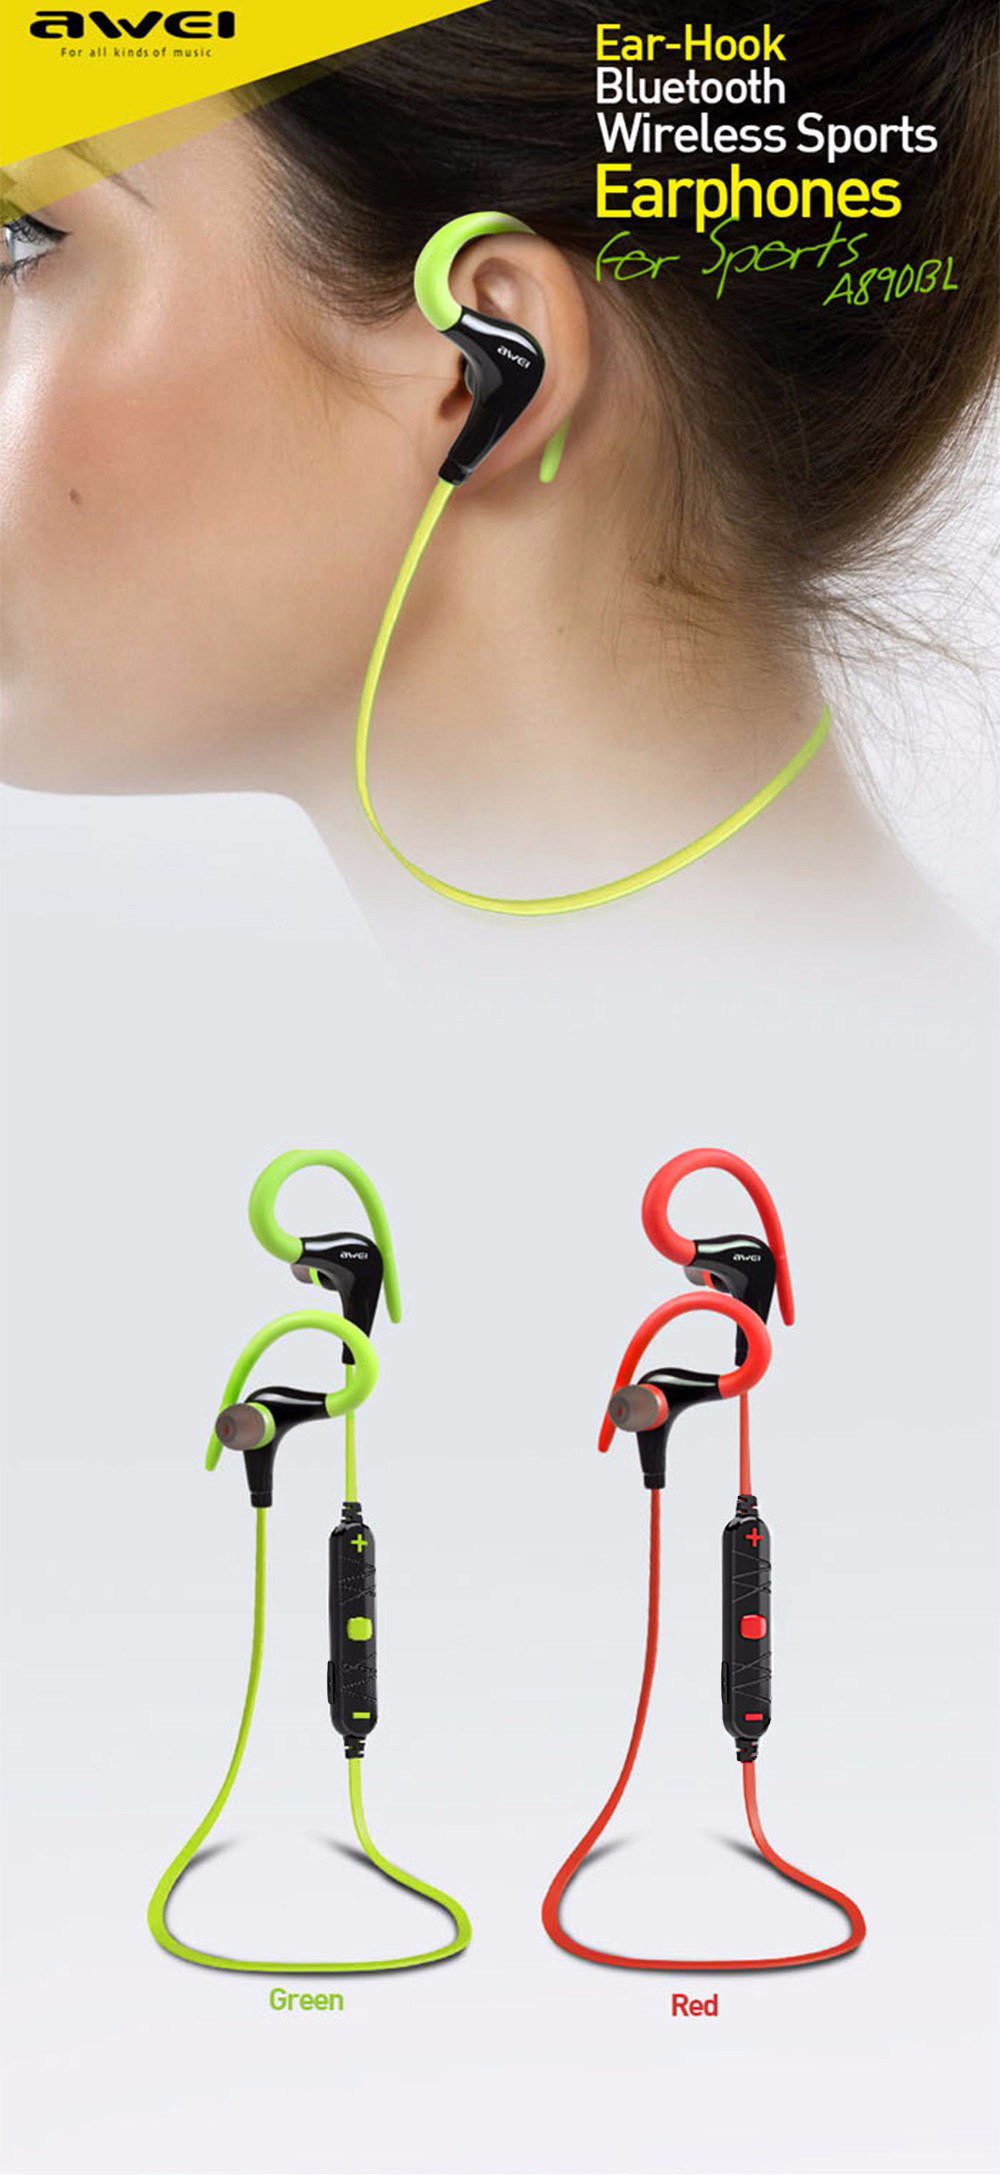 Awei A890bl Bluetooth 40 Wireless Sport Earphones 1779 Free Original A920bl Exercise Stereo Noise Reduction Earbuds Build In Microphone Sports Earphone With Handsfree Function Black